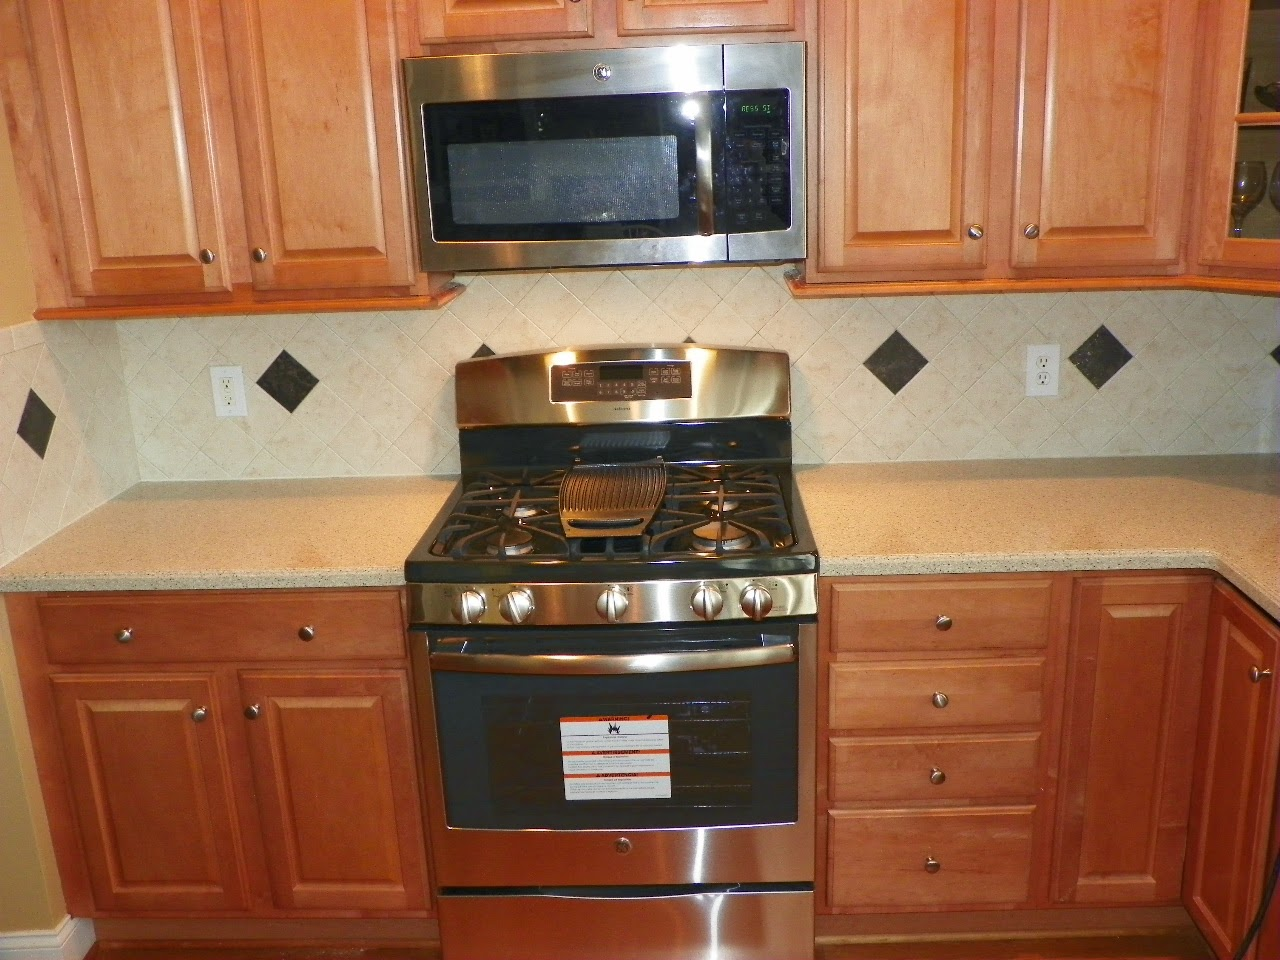 Stove Countertop Replacement : ... stove is installed the homeowner was quite happy to get her new stove